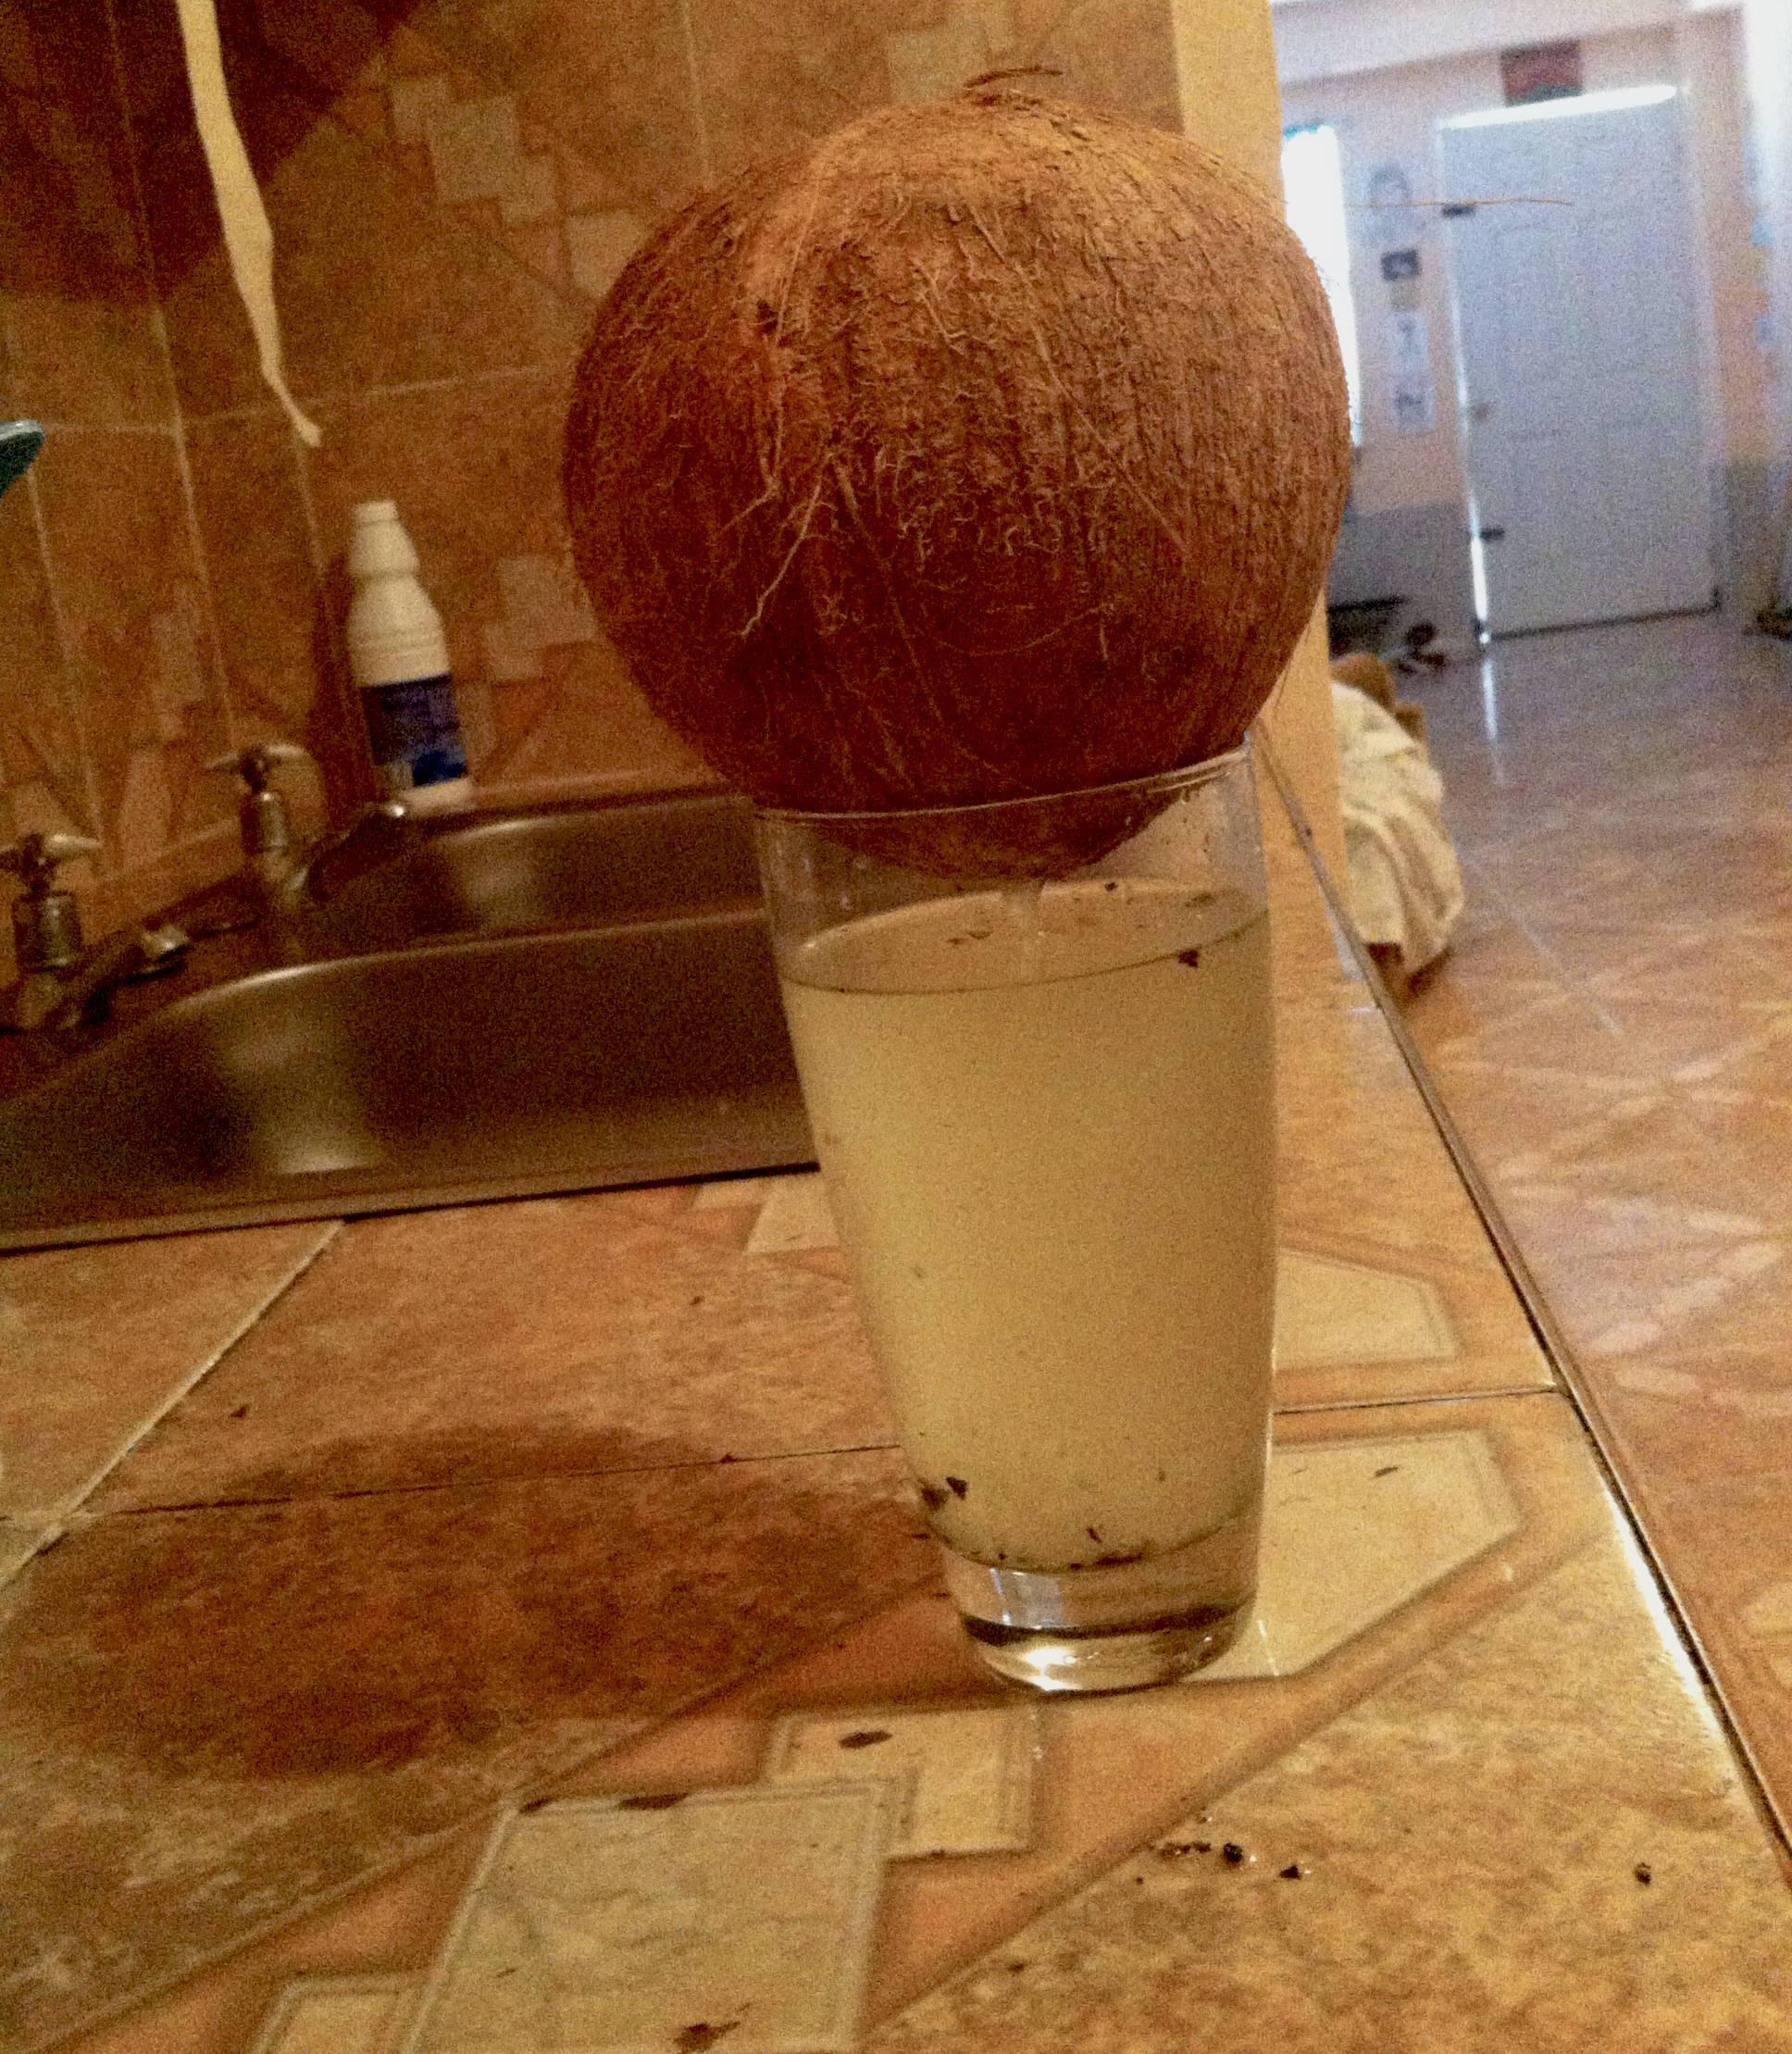 The best part of making coconut milk is you get to drink all of the water first.